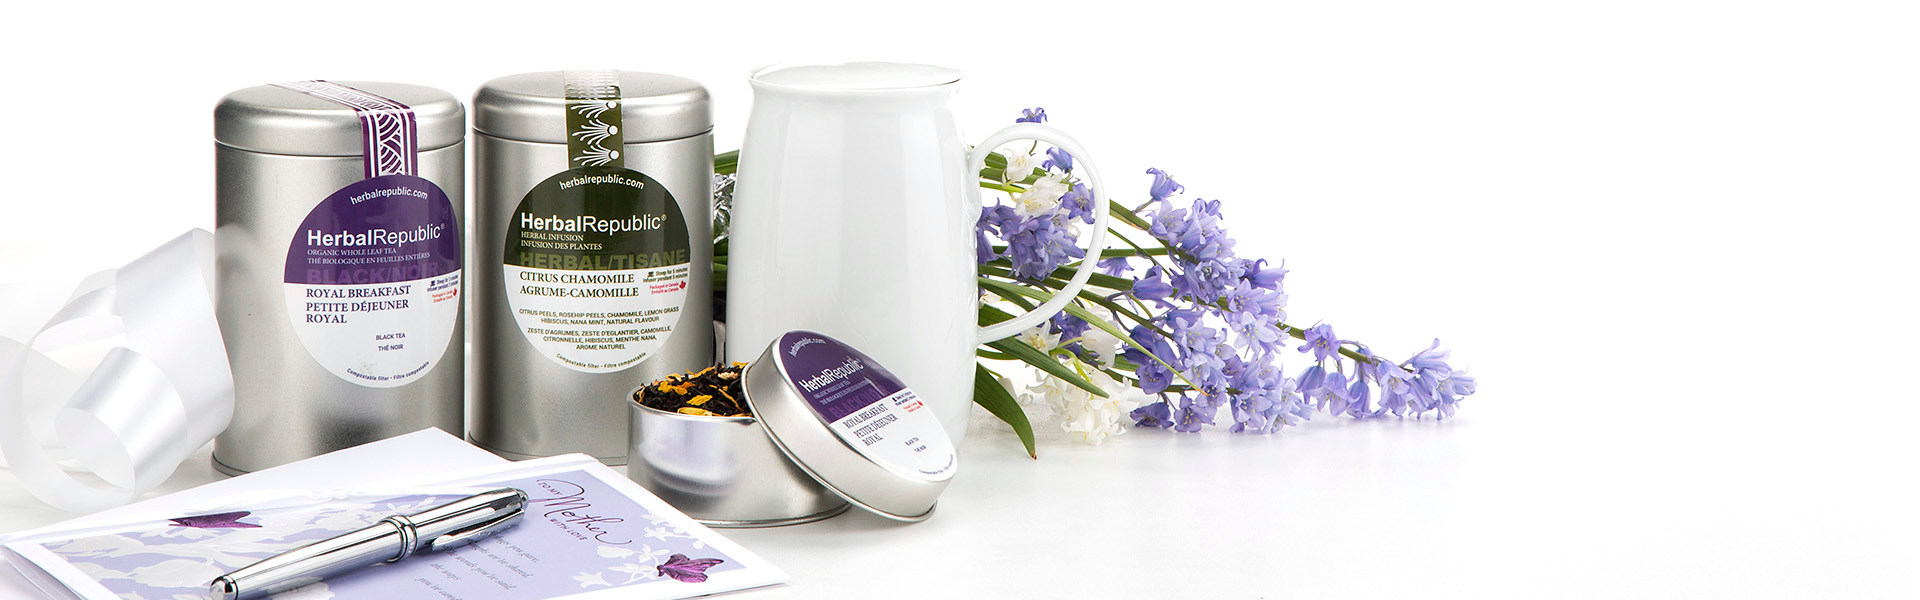 Herbal Republic - Mother's Day Tins - 201K